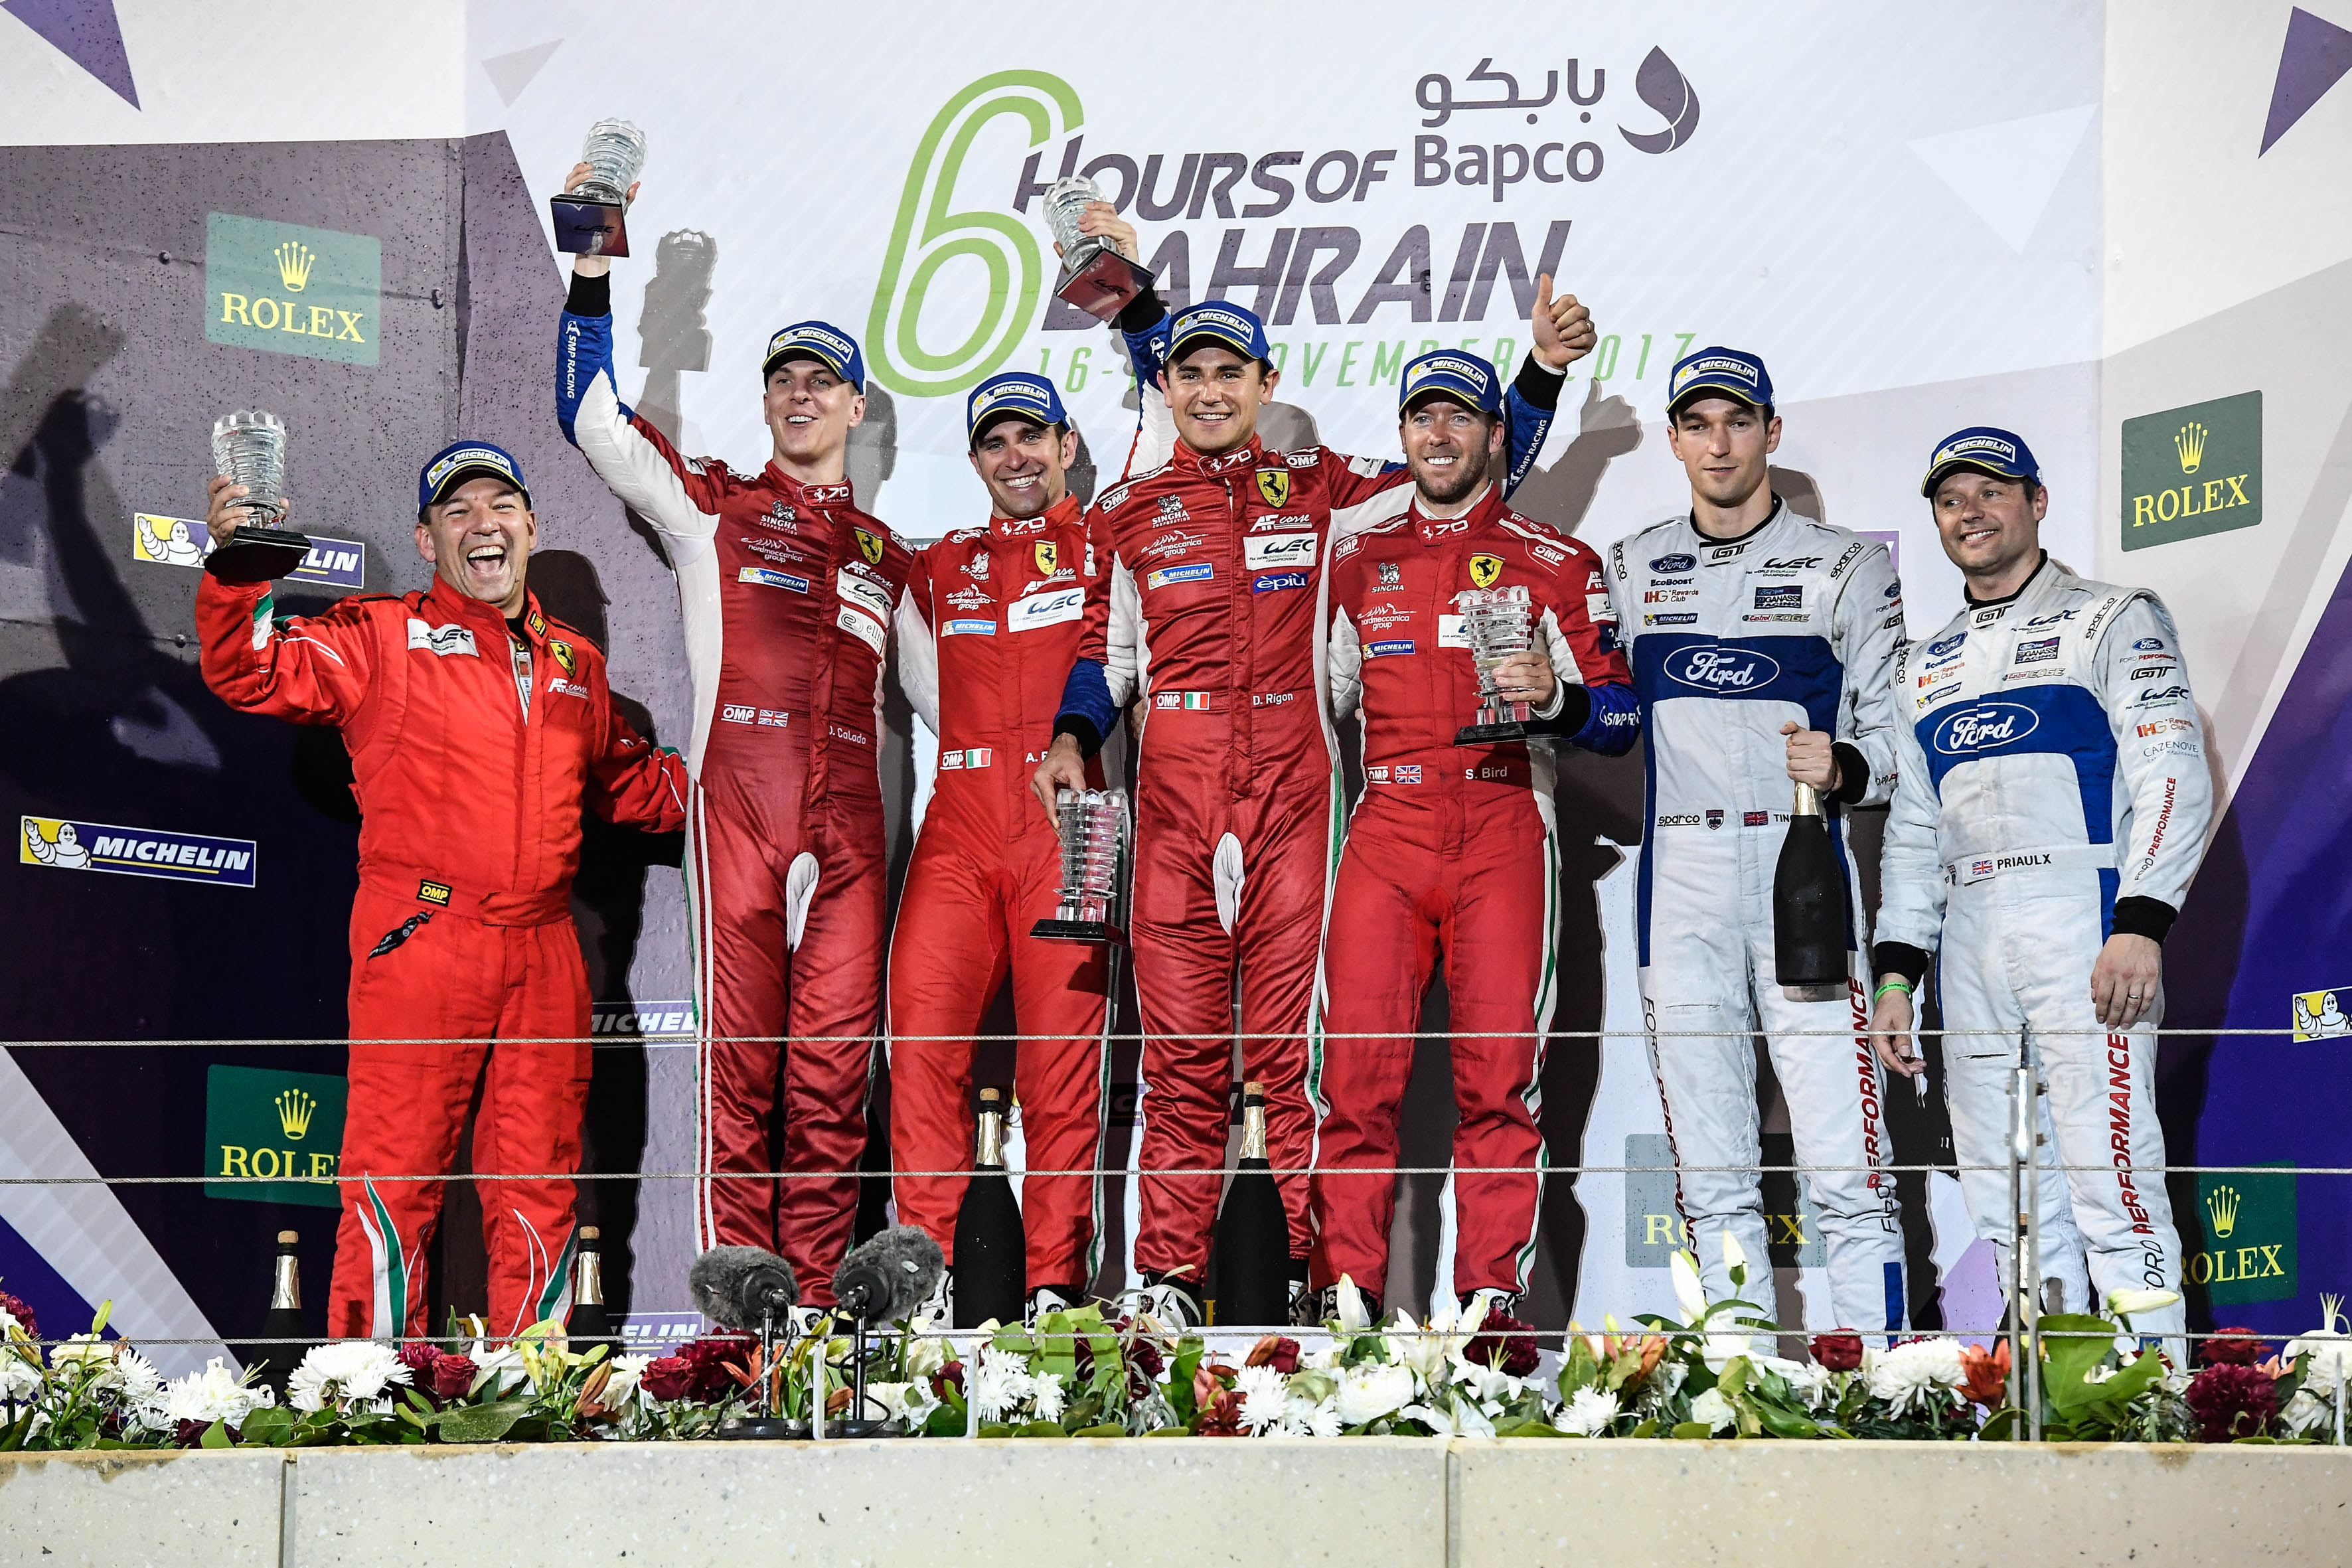 Pier Guidi and Calado Win World Endurance Championship